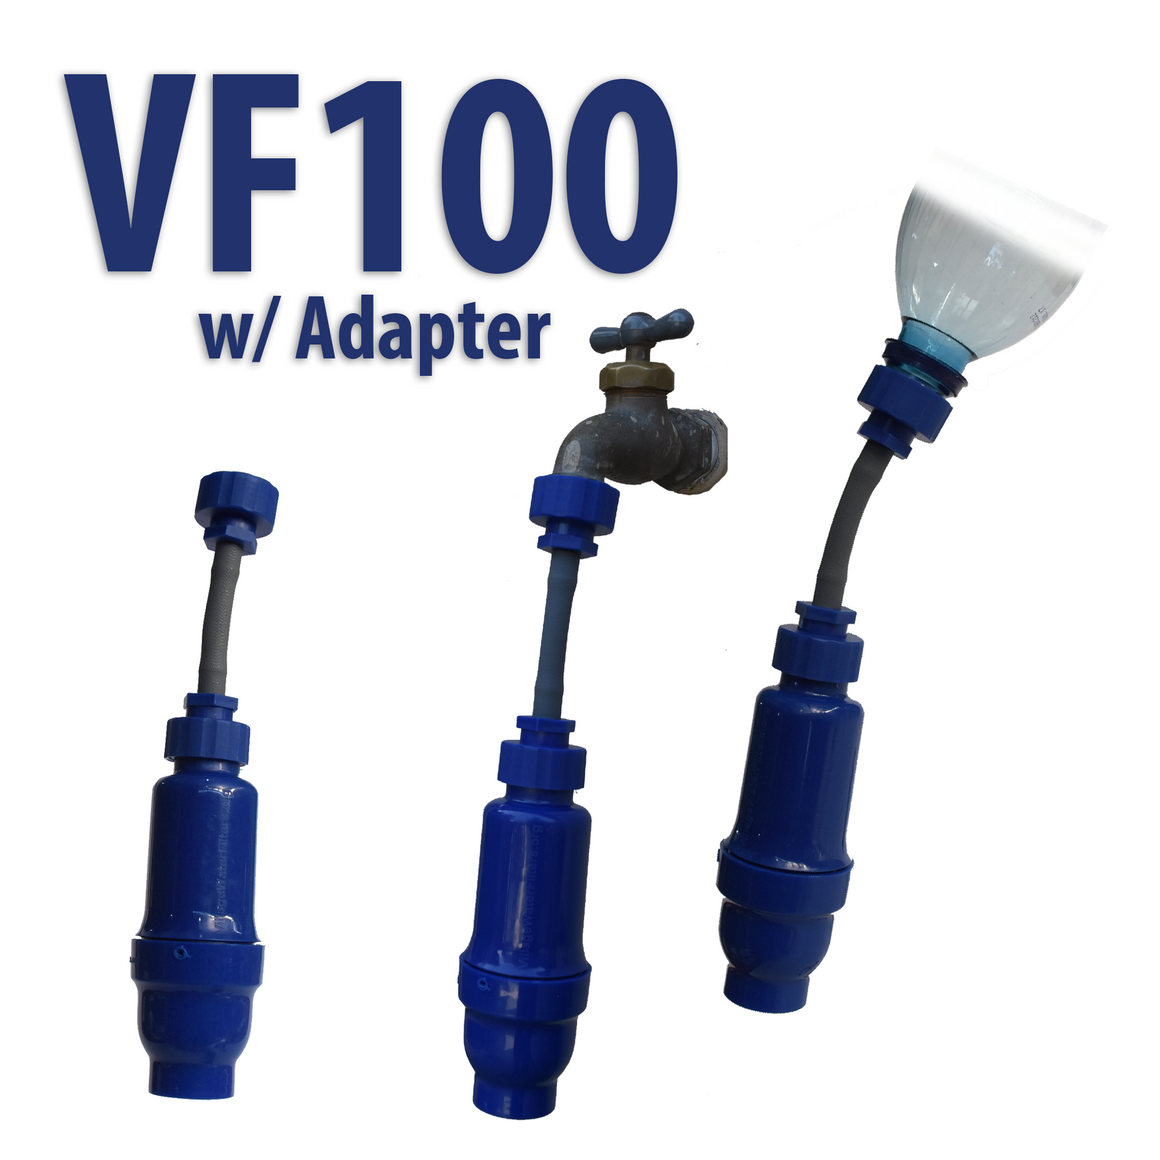 VF100 Water Filter incl. VF200 Carbon Pre-Filter and Bucket Kit